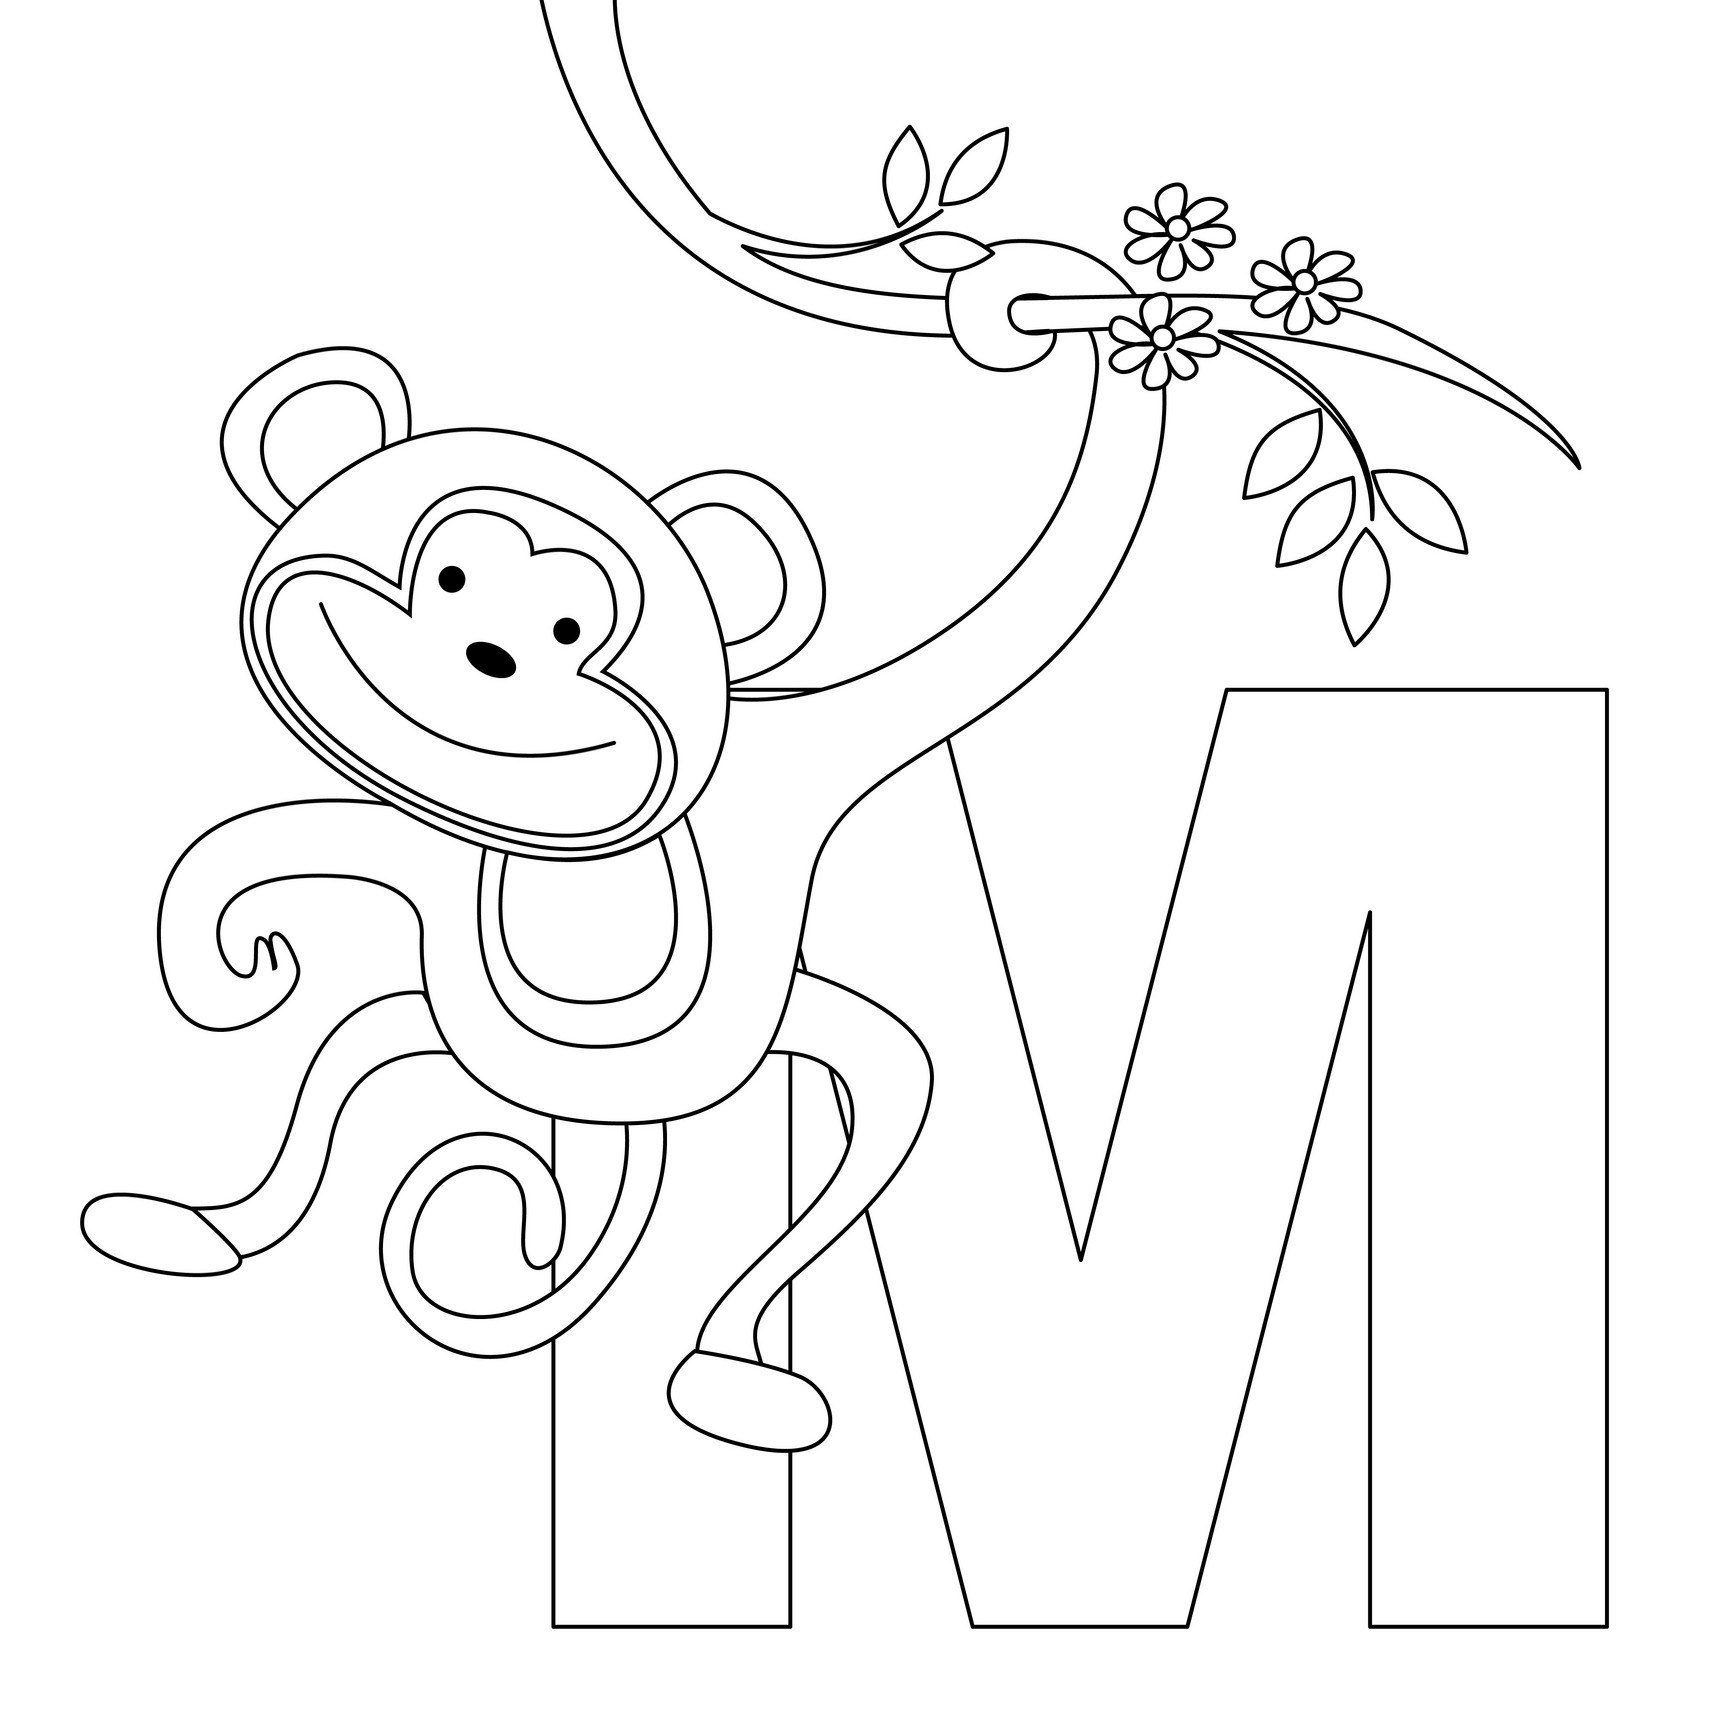 Free Printable Alphabet Coloring